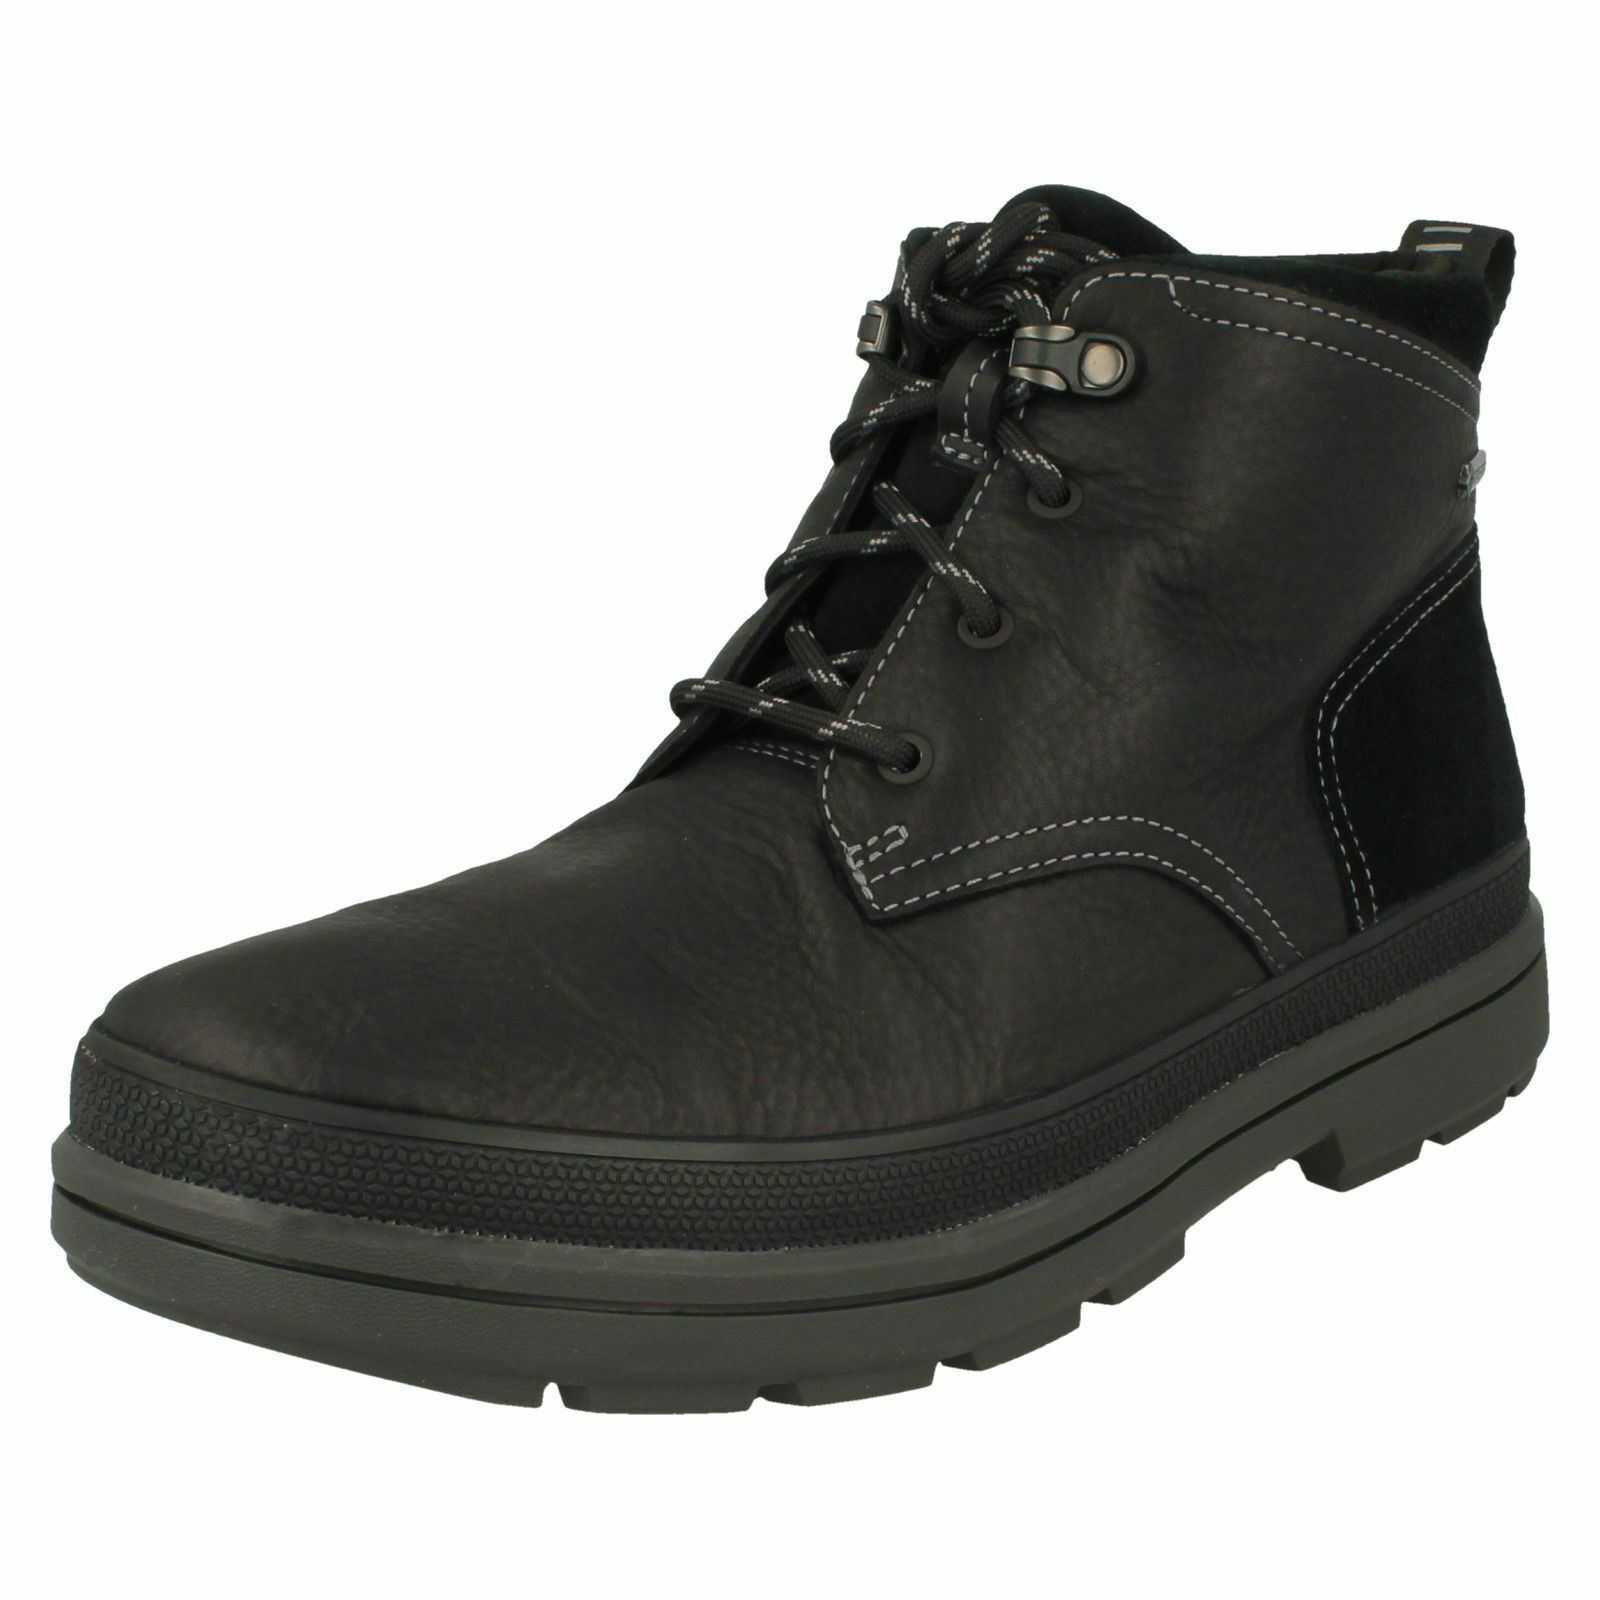 Mens Clarks Gore-Tex Casual Boots 'Rushway Mid'